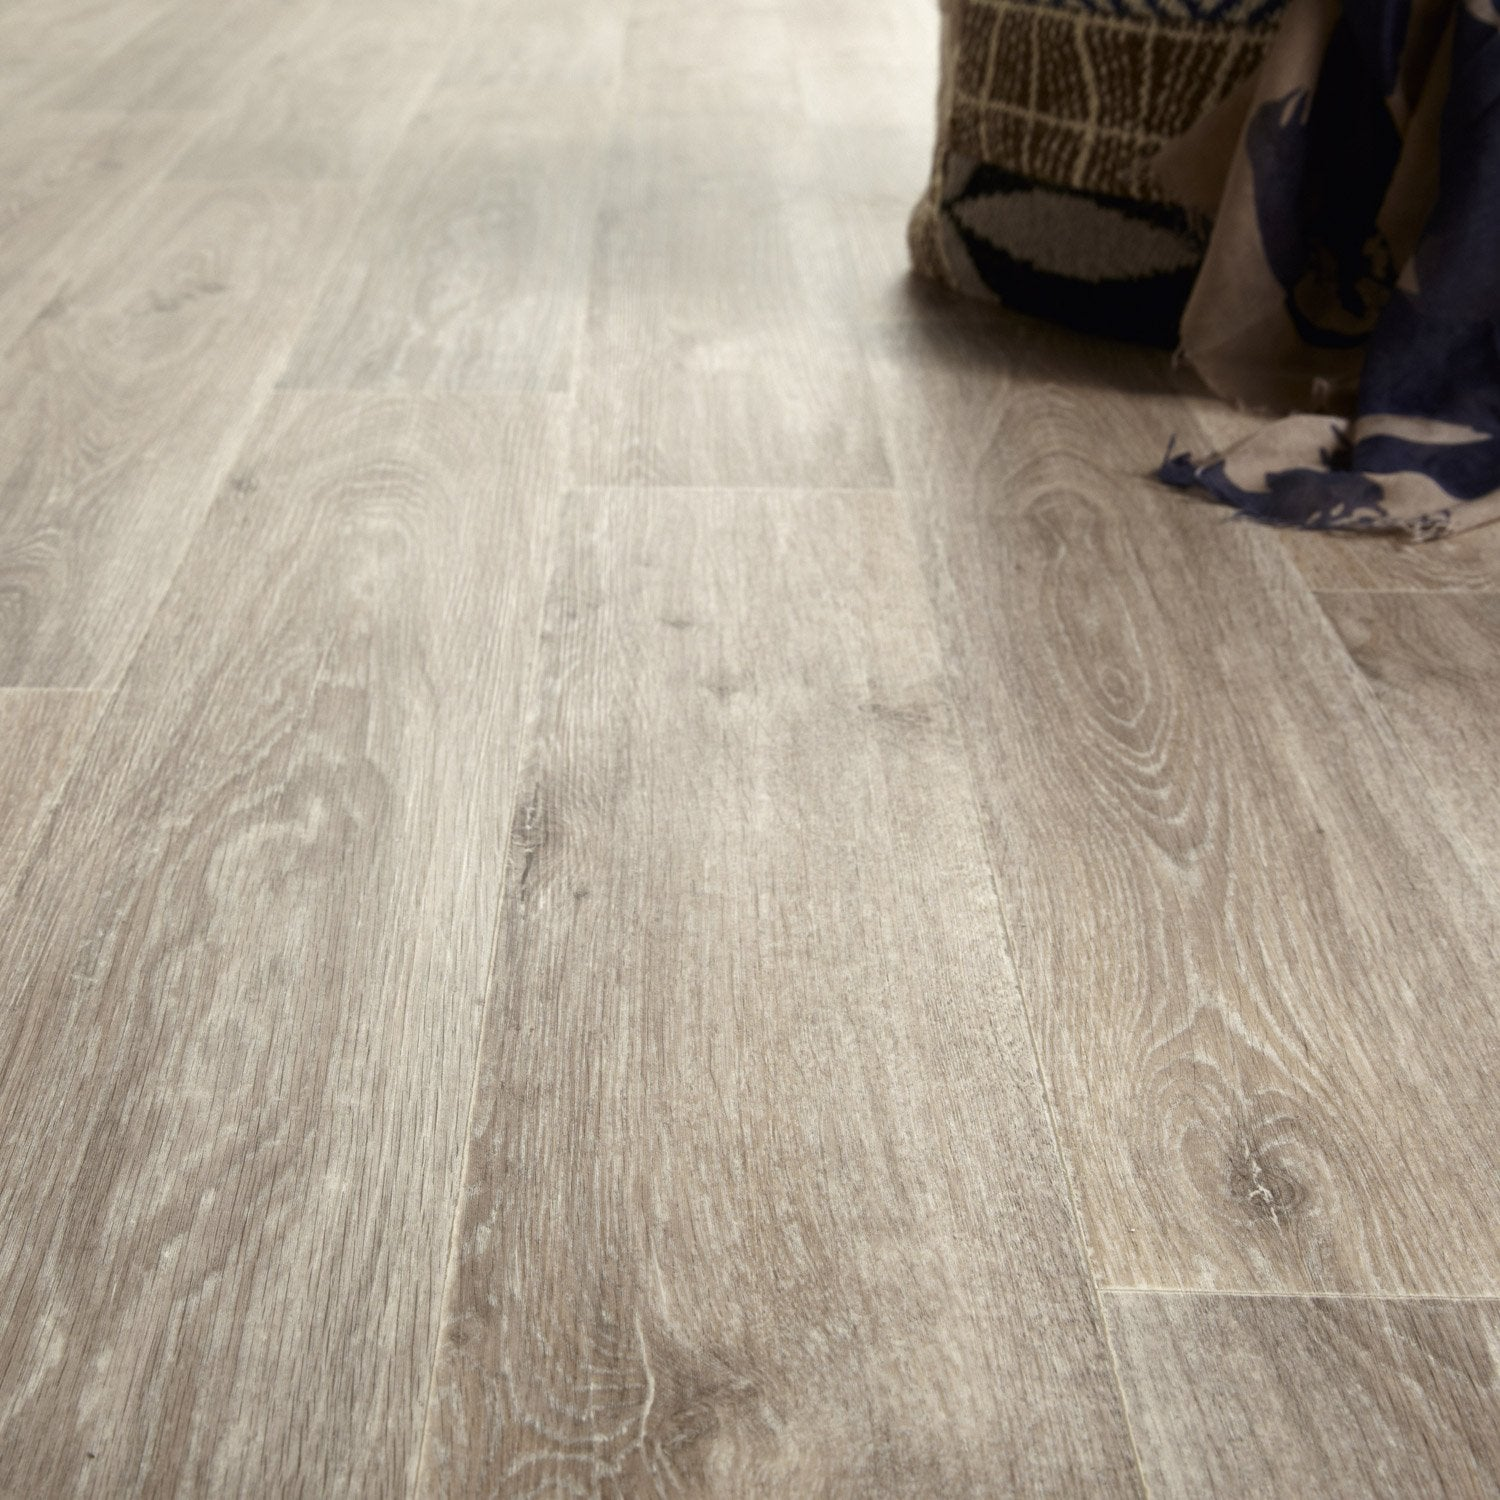 Sol vinyle texline hqr noma champagne coupe 4 for Coupe carrelage leroy merlin